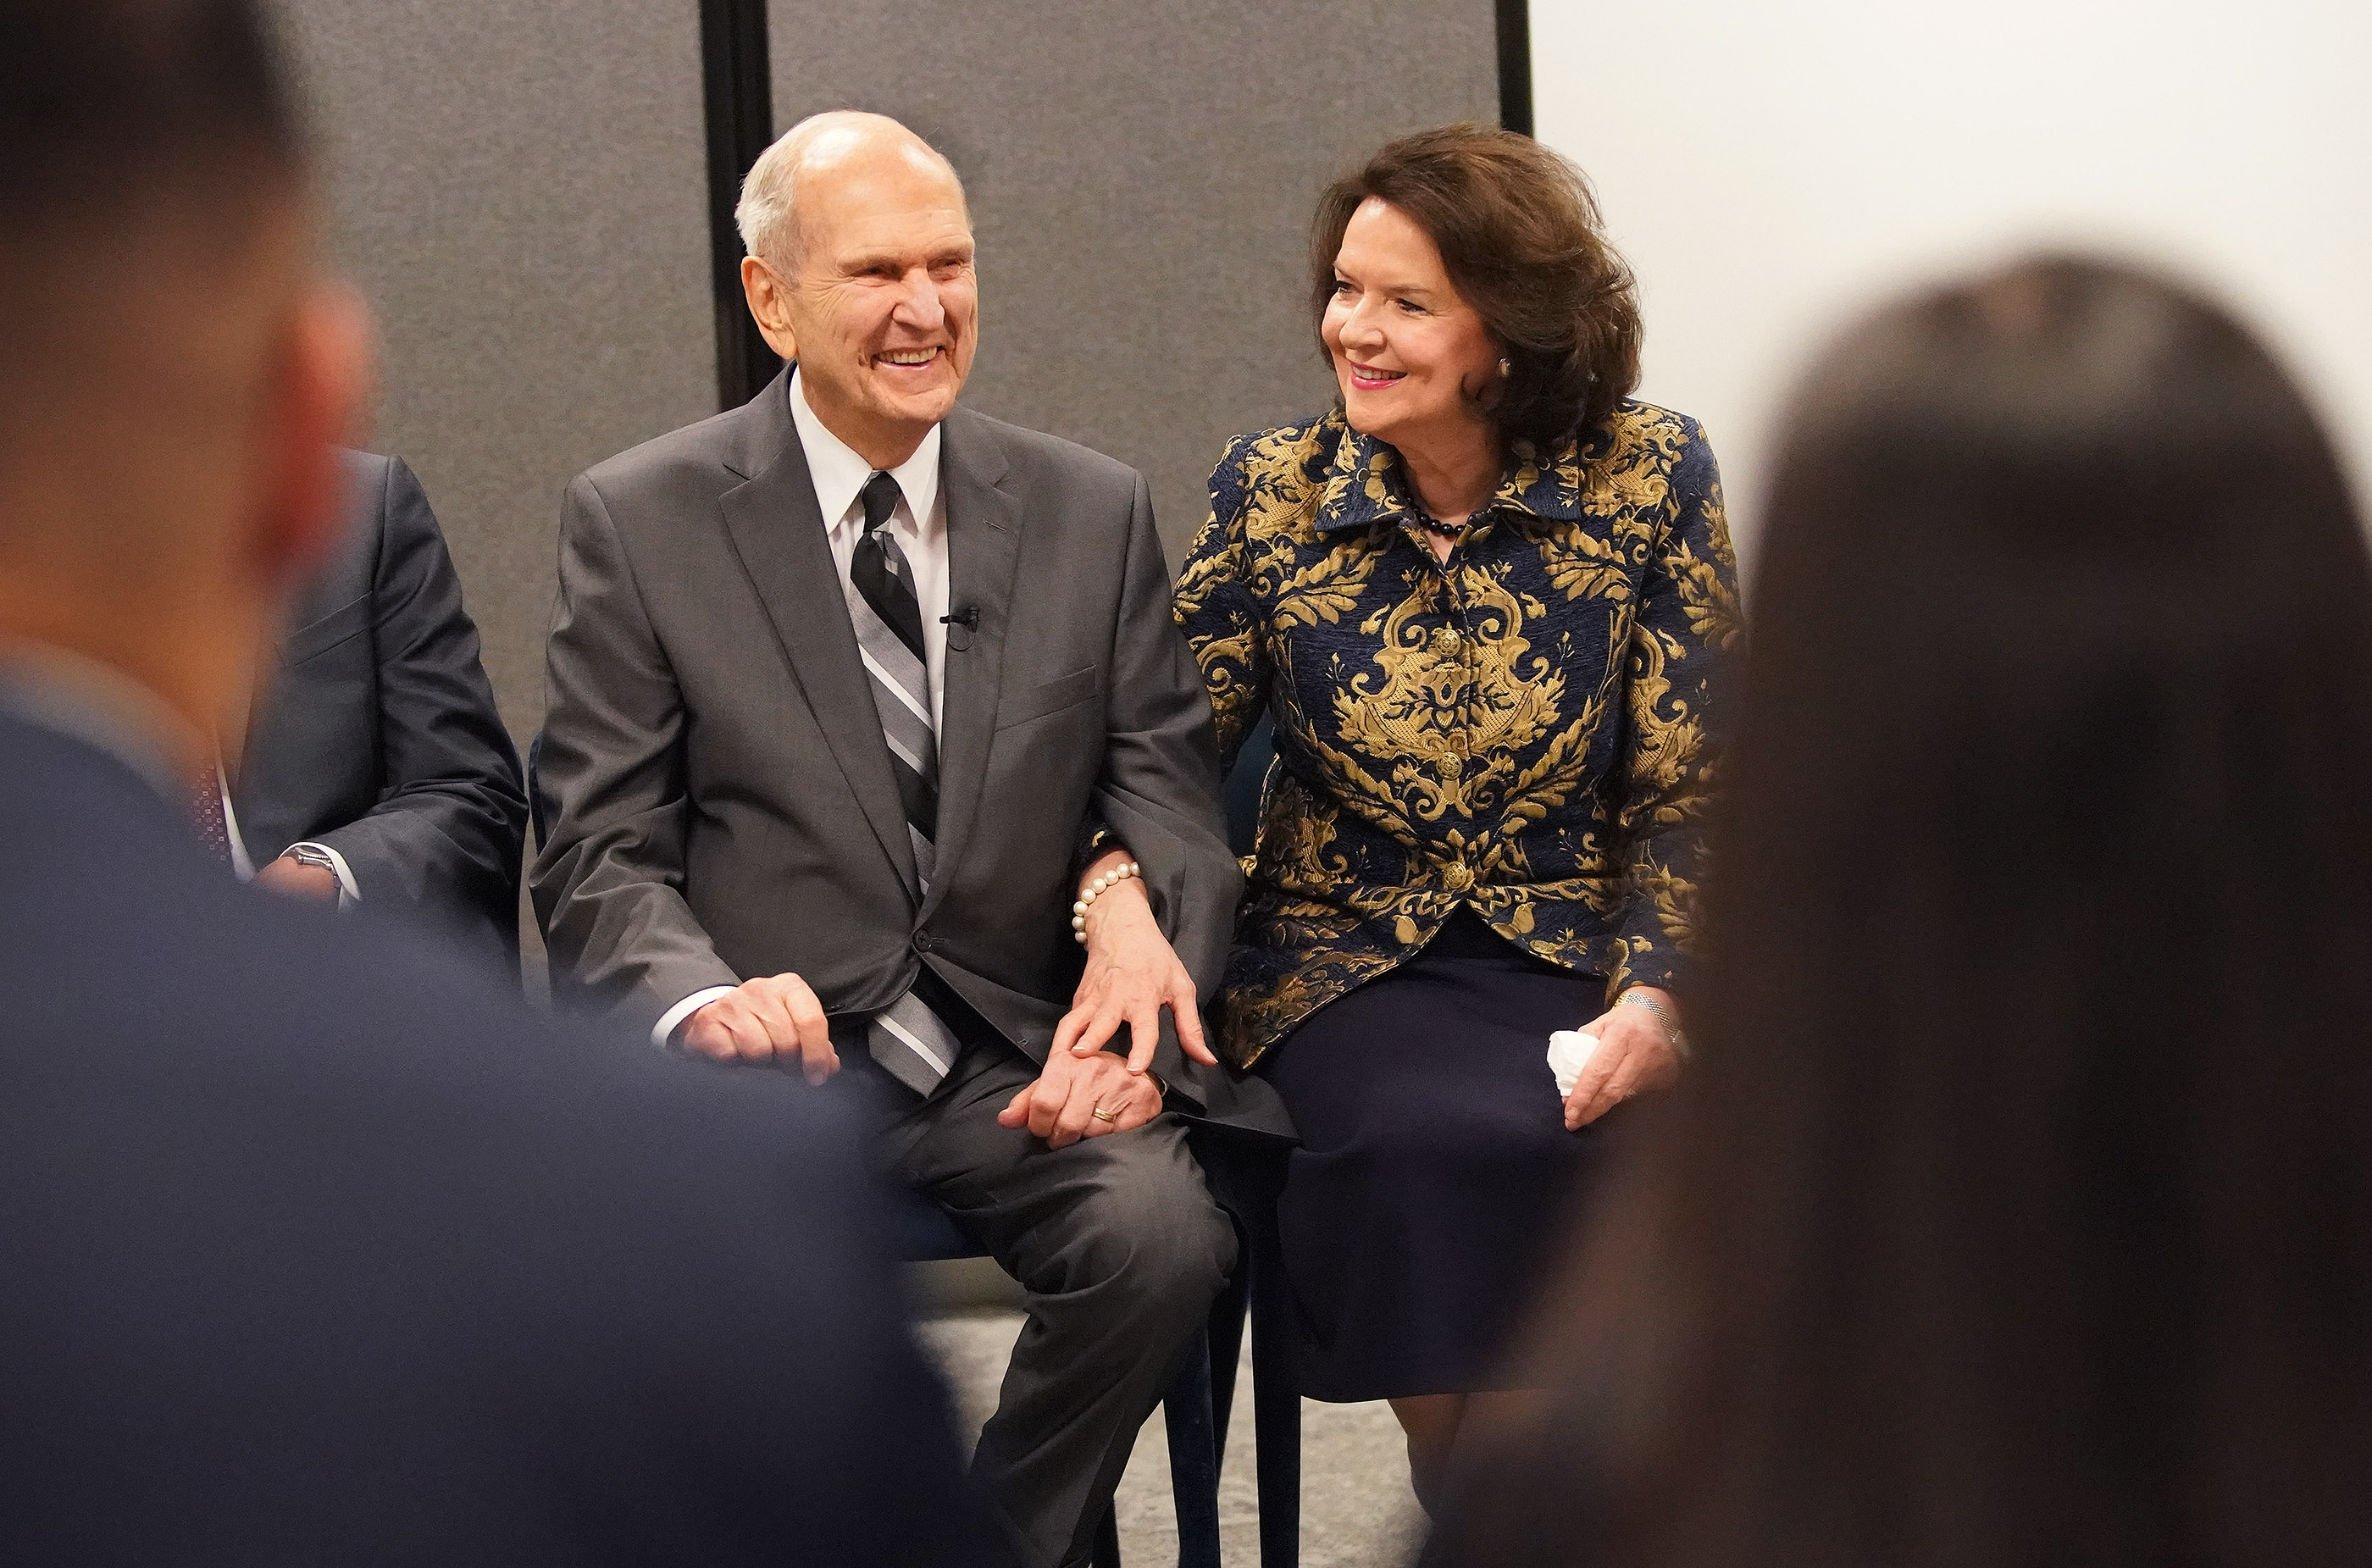 President Russell M. Nelson of The Church of Jesus Christ of Latter-day Saints and his wife, Sister Wendy Nelson, laugh as they meet with youth during a meeting on May 19, 2019, in Sydney, Australia.